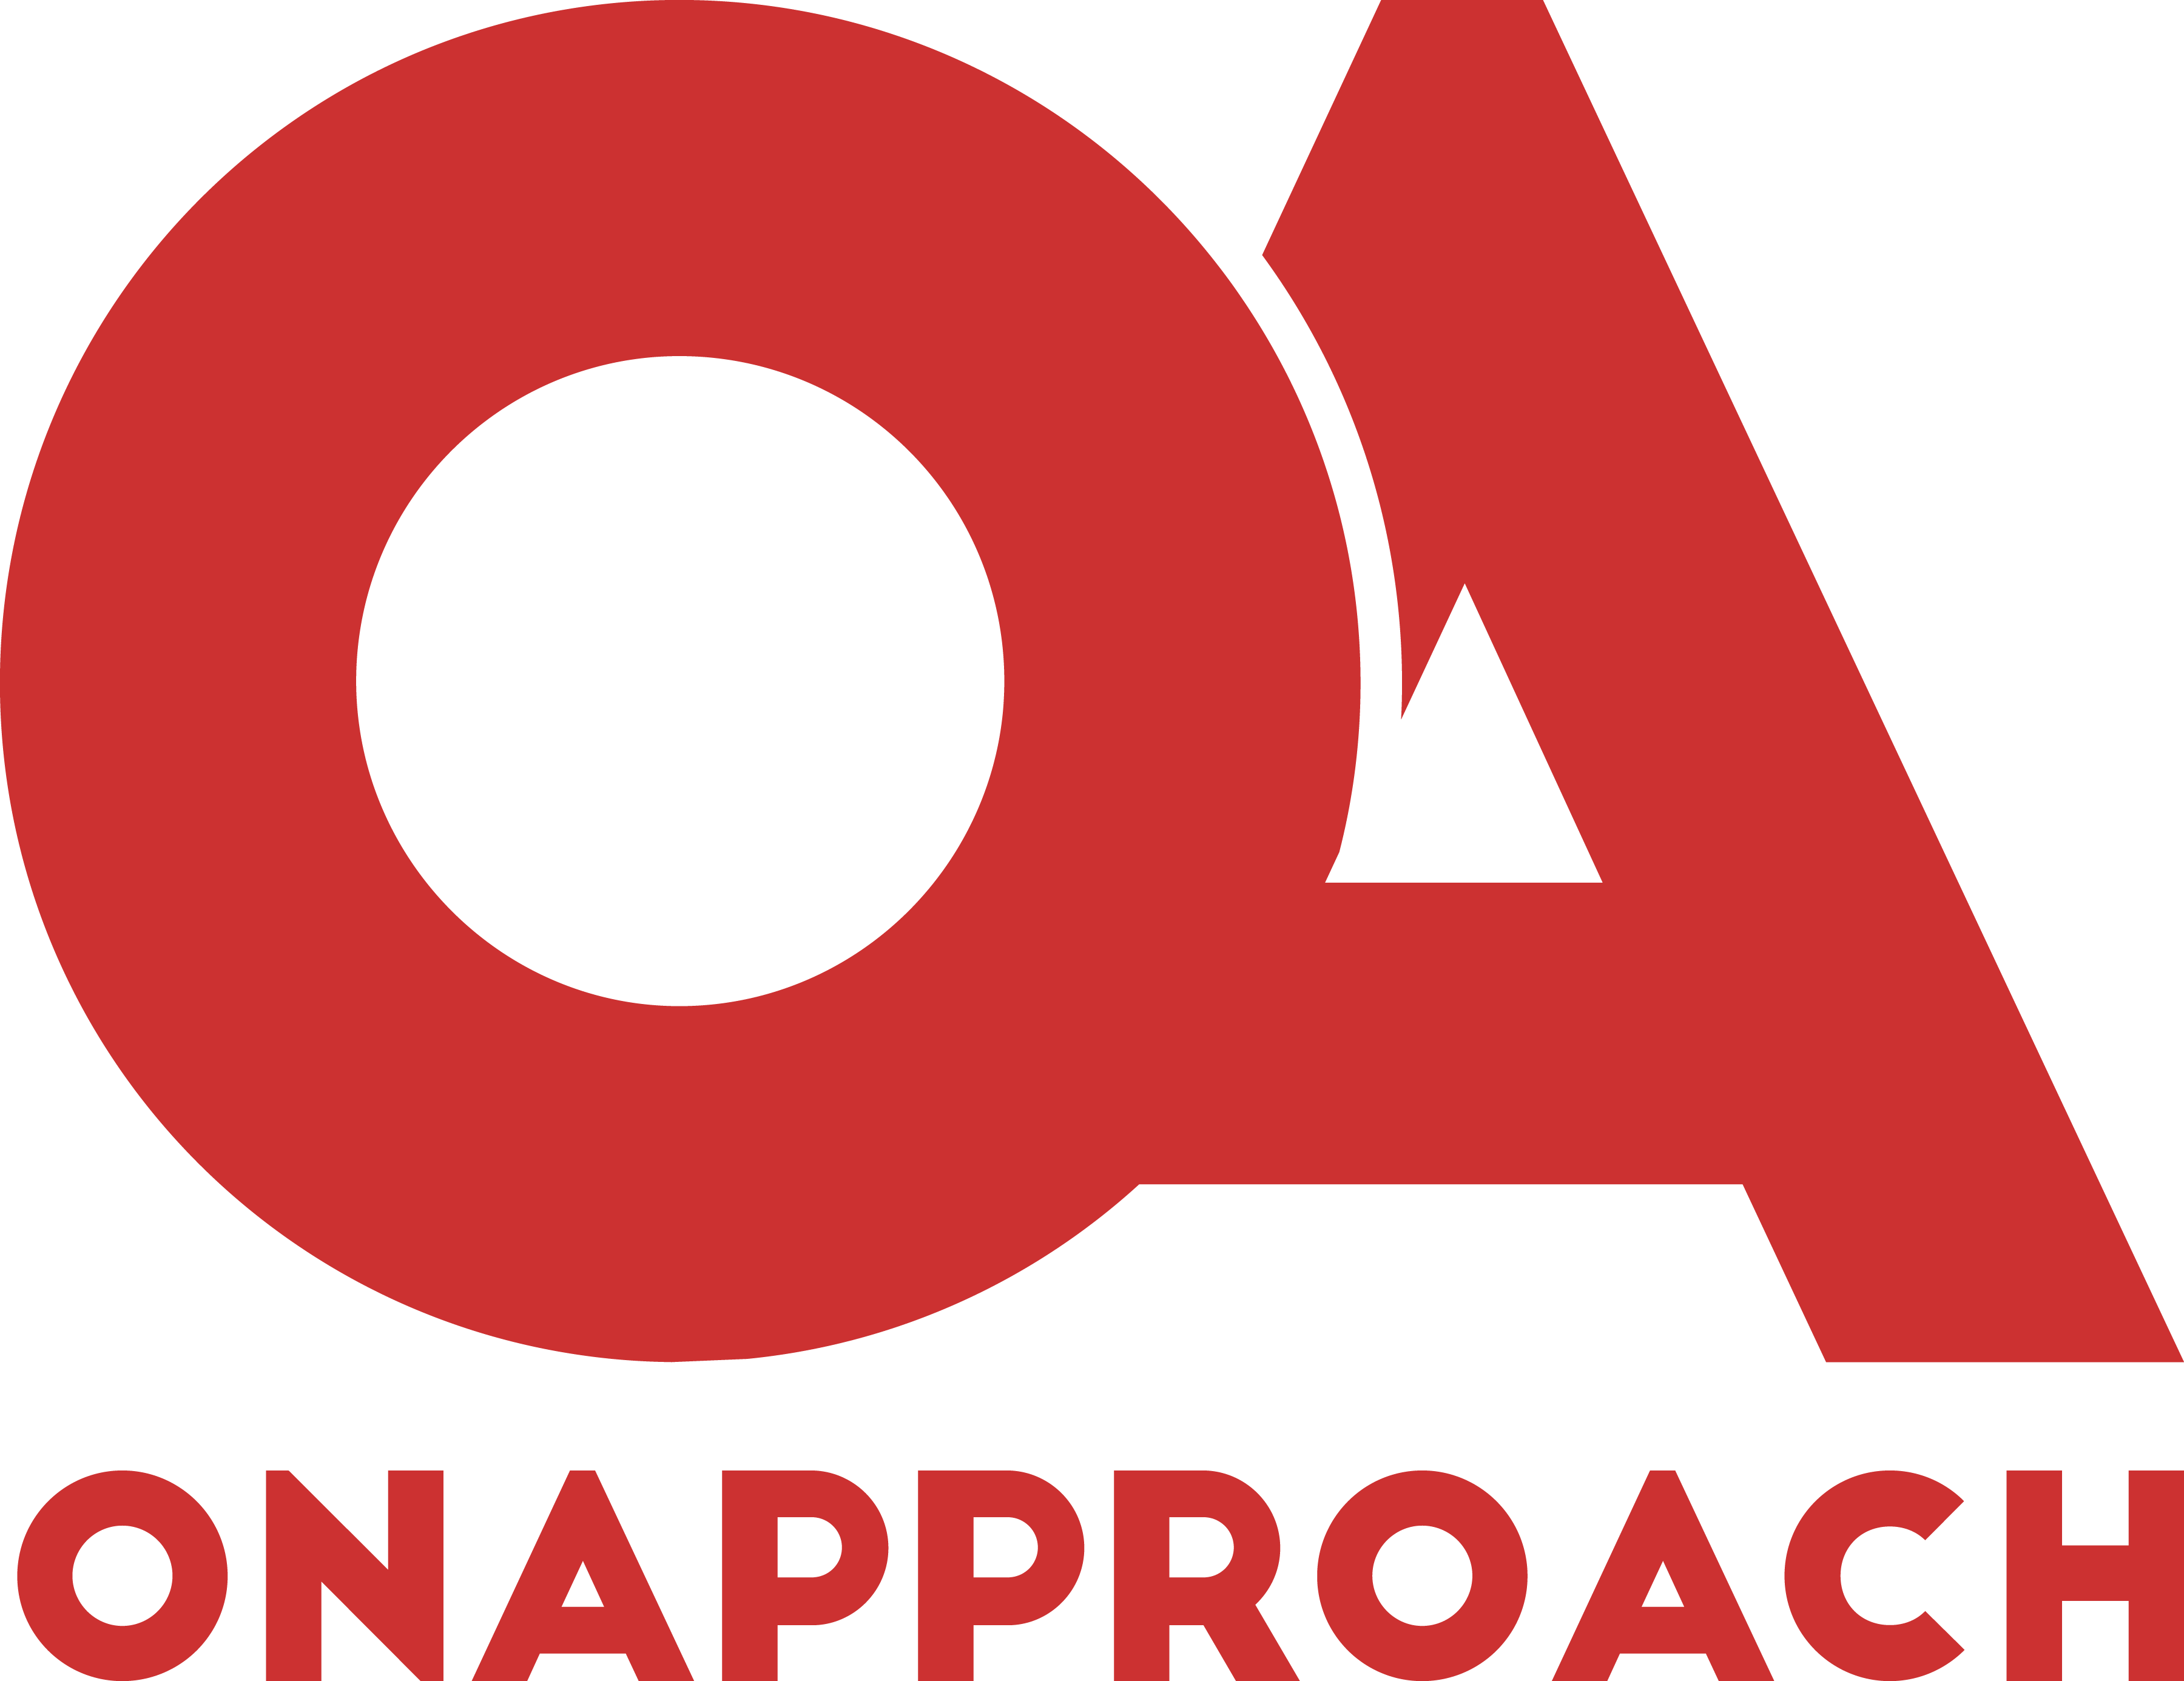 oa logo with text.png